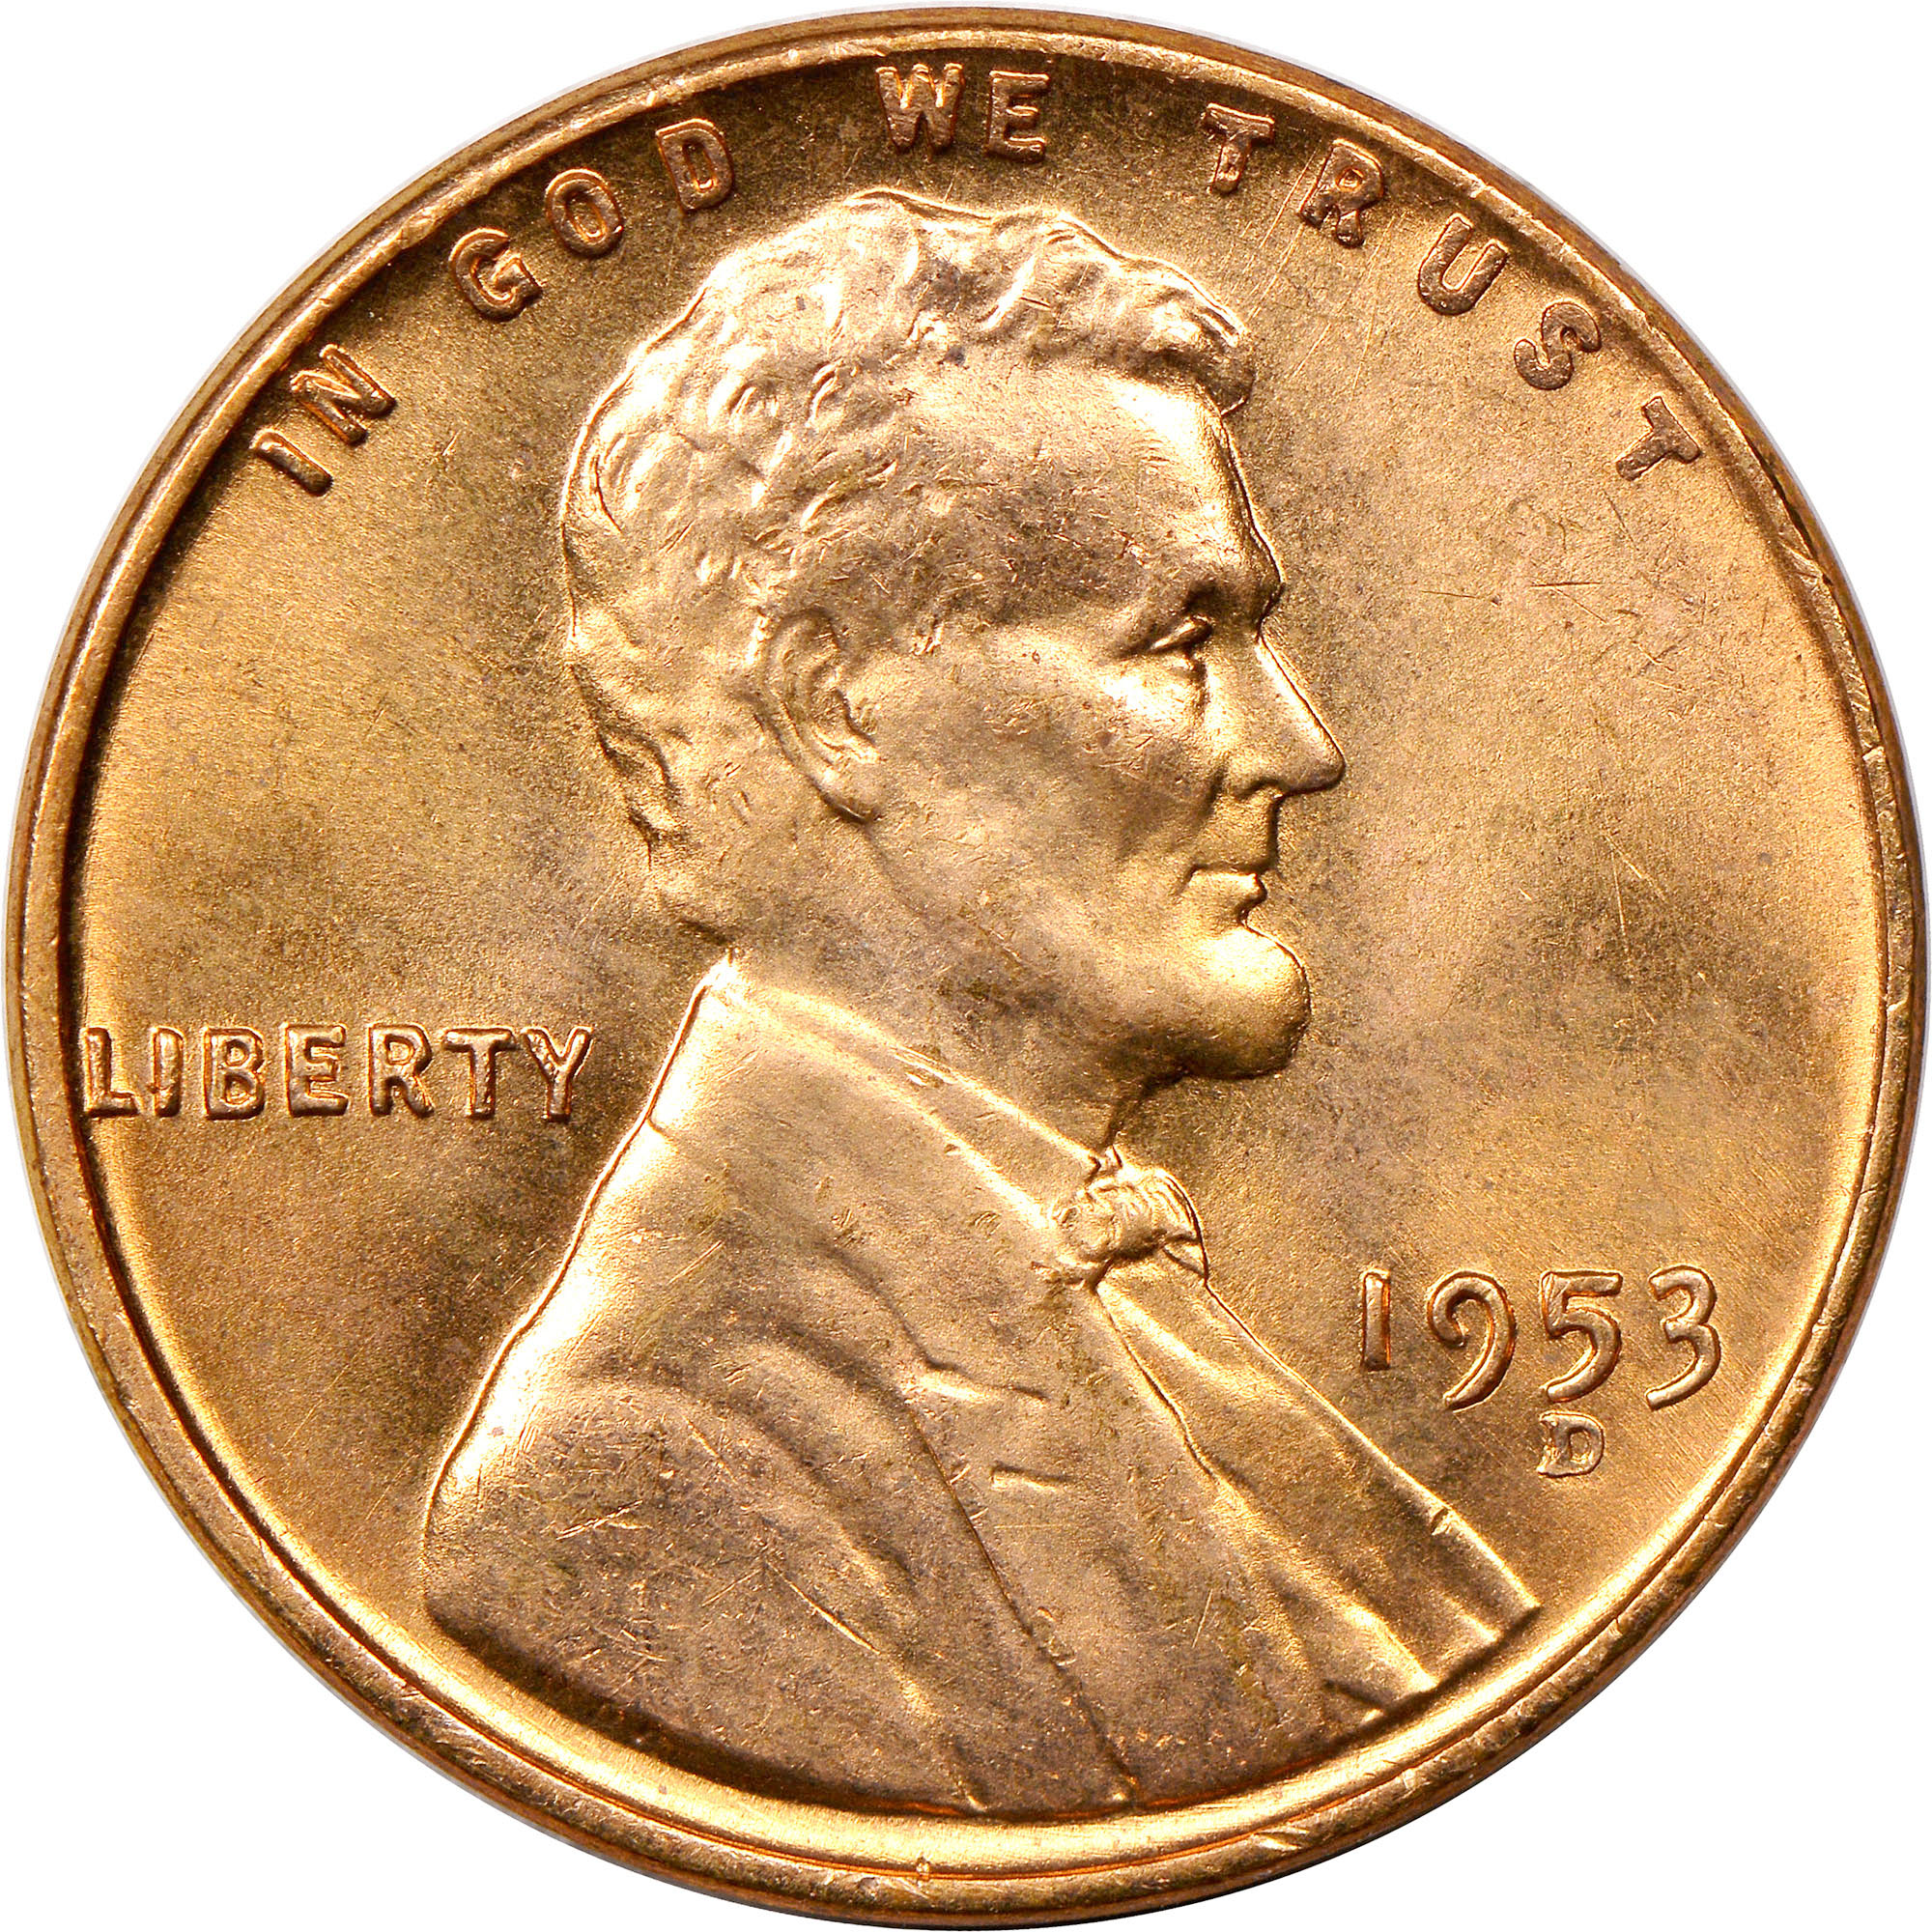 BU 1953 D LINCOLN CENT